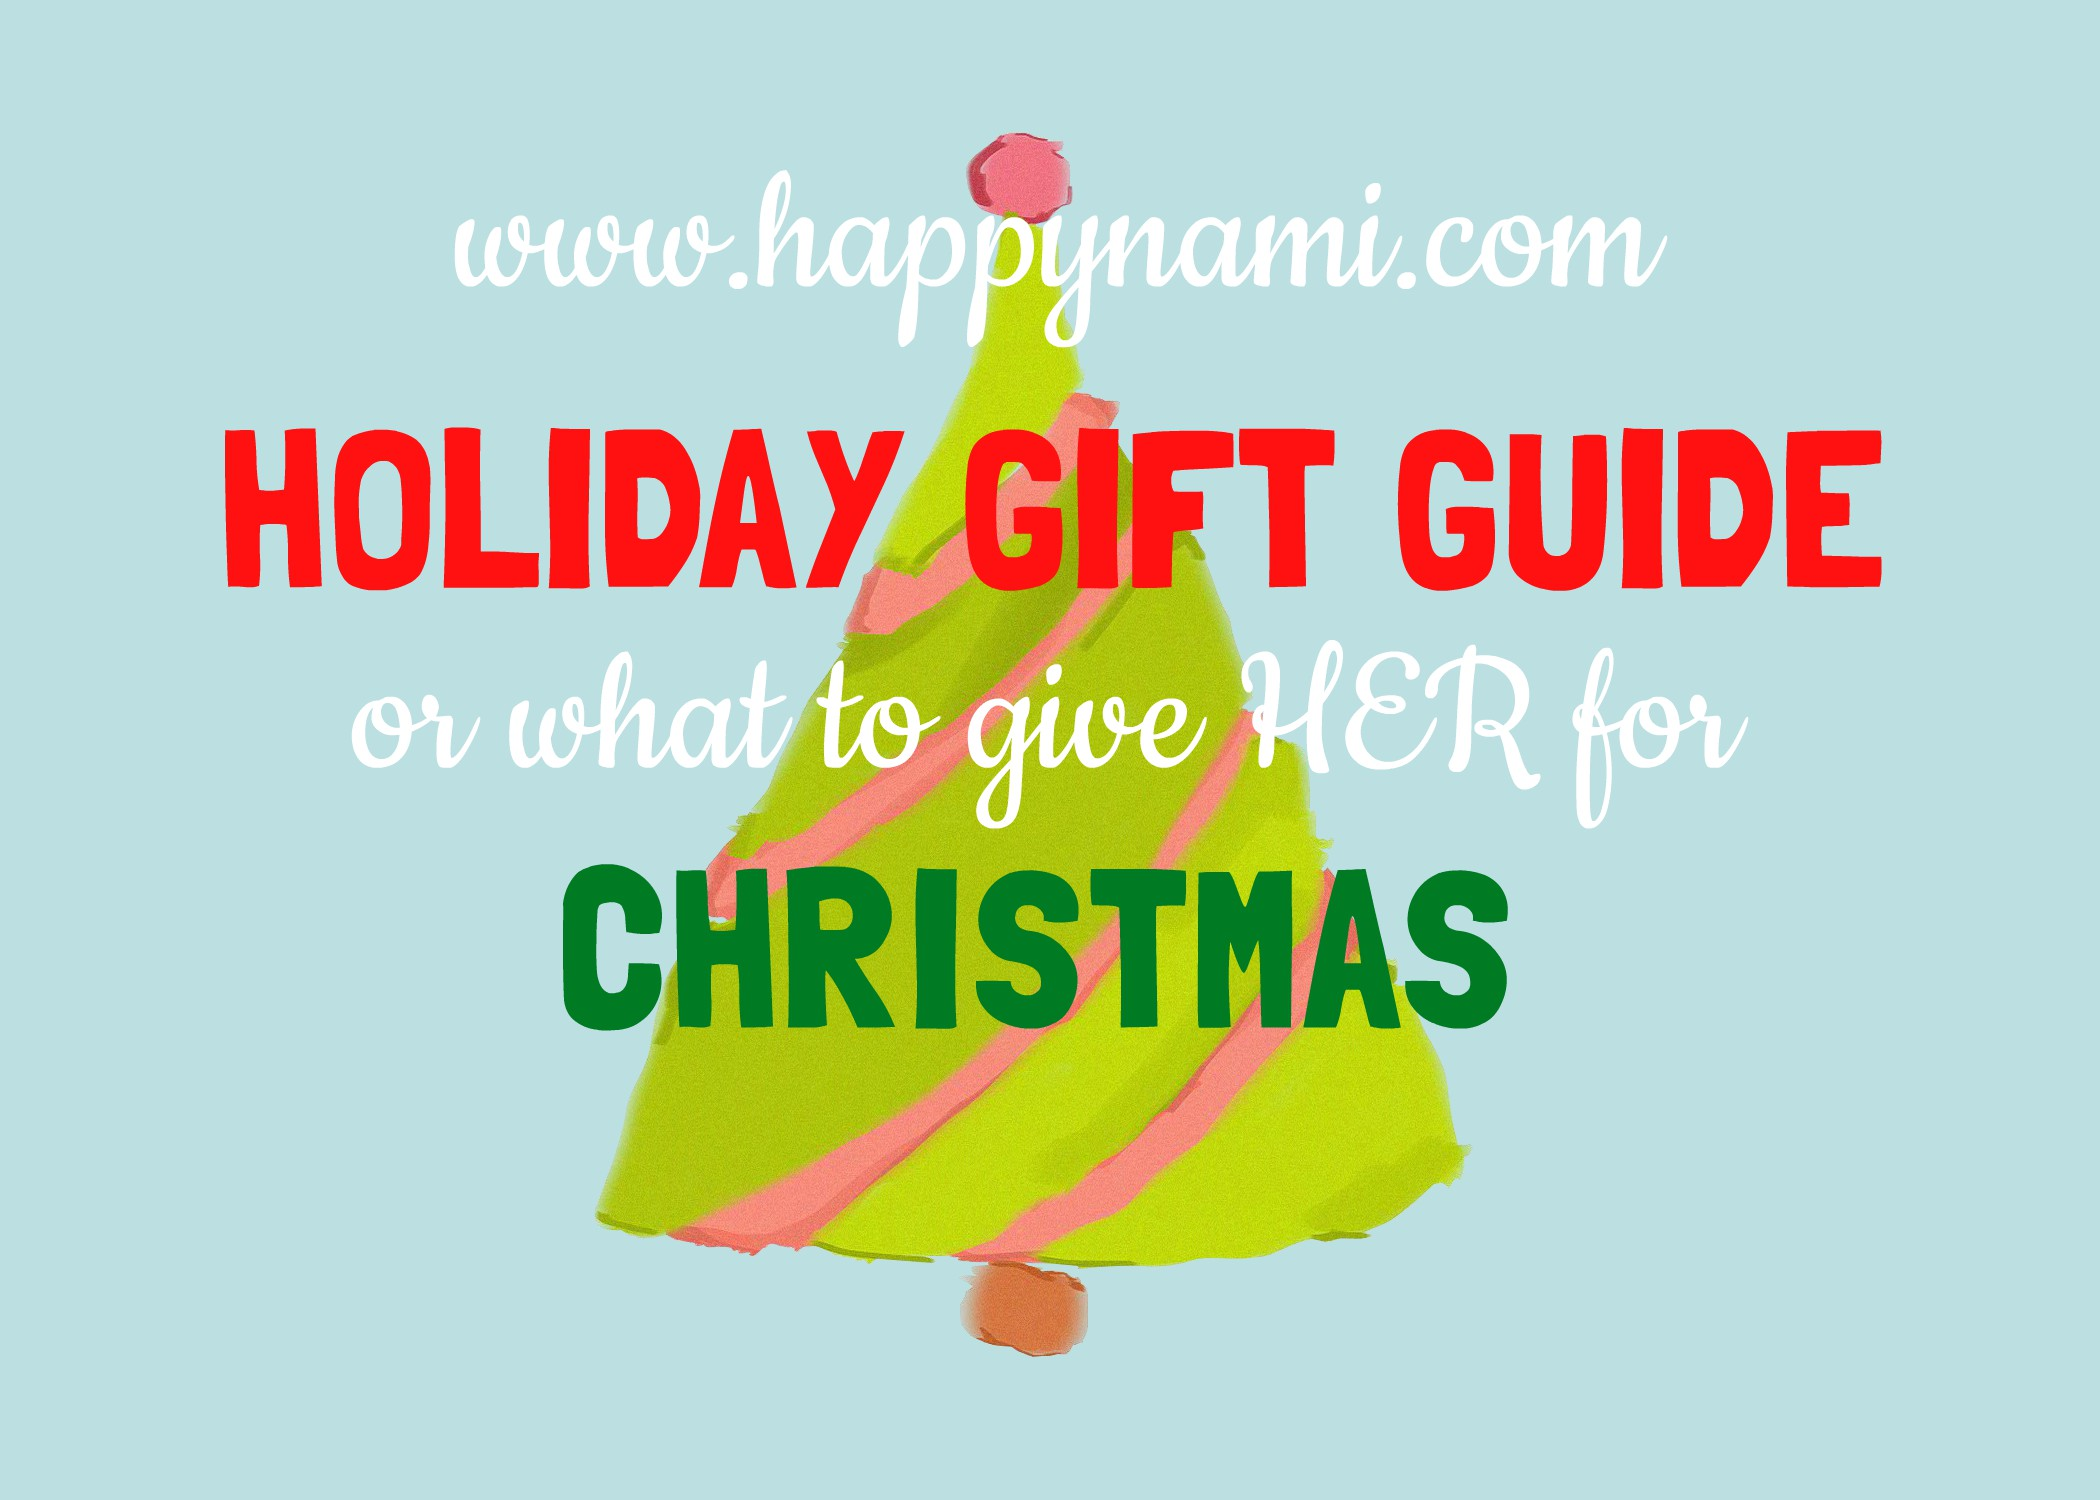 HOLIDAY GIFT GUIDE or what to give HER for Christmas